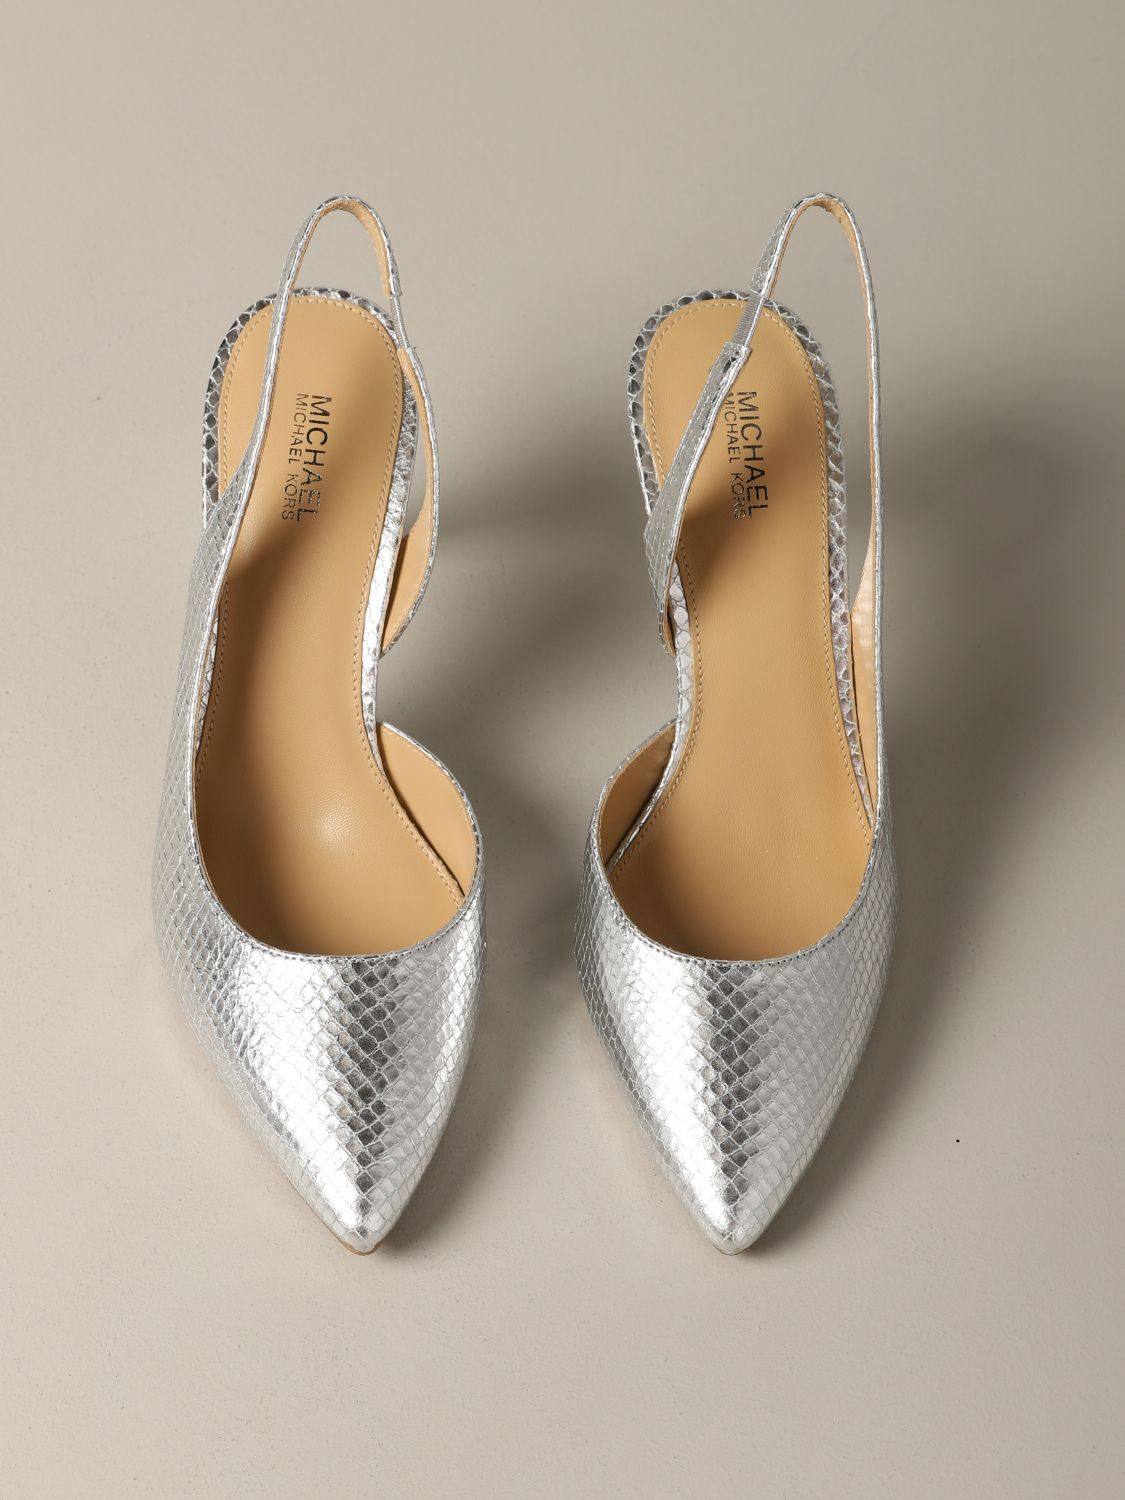 Michael Michael Kors Lucille flex d'orsay pumps in python print leather silver 3